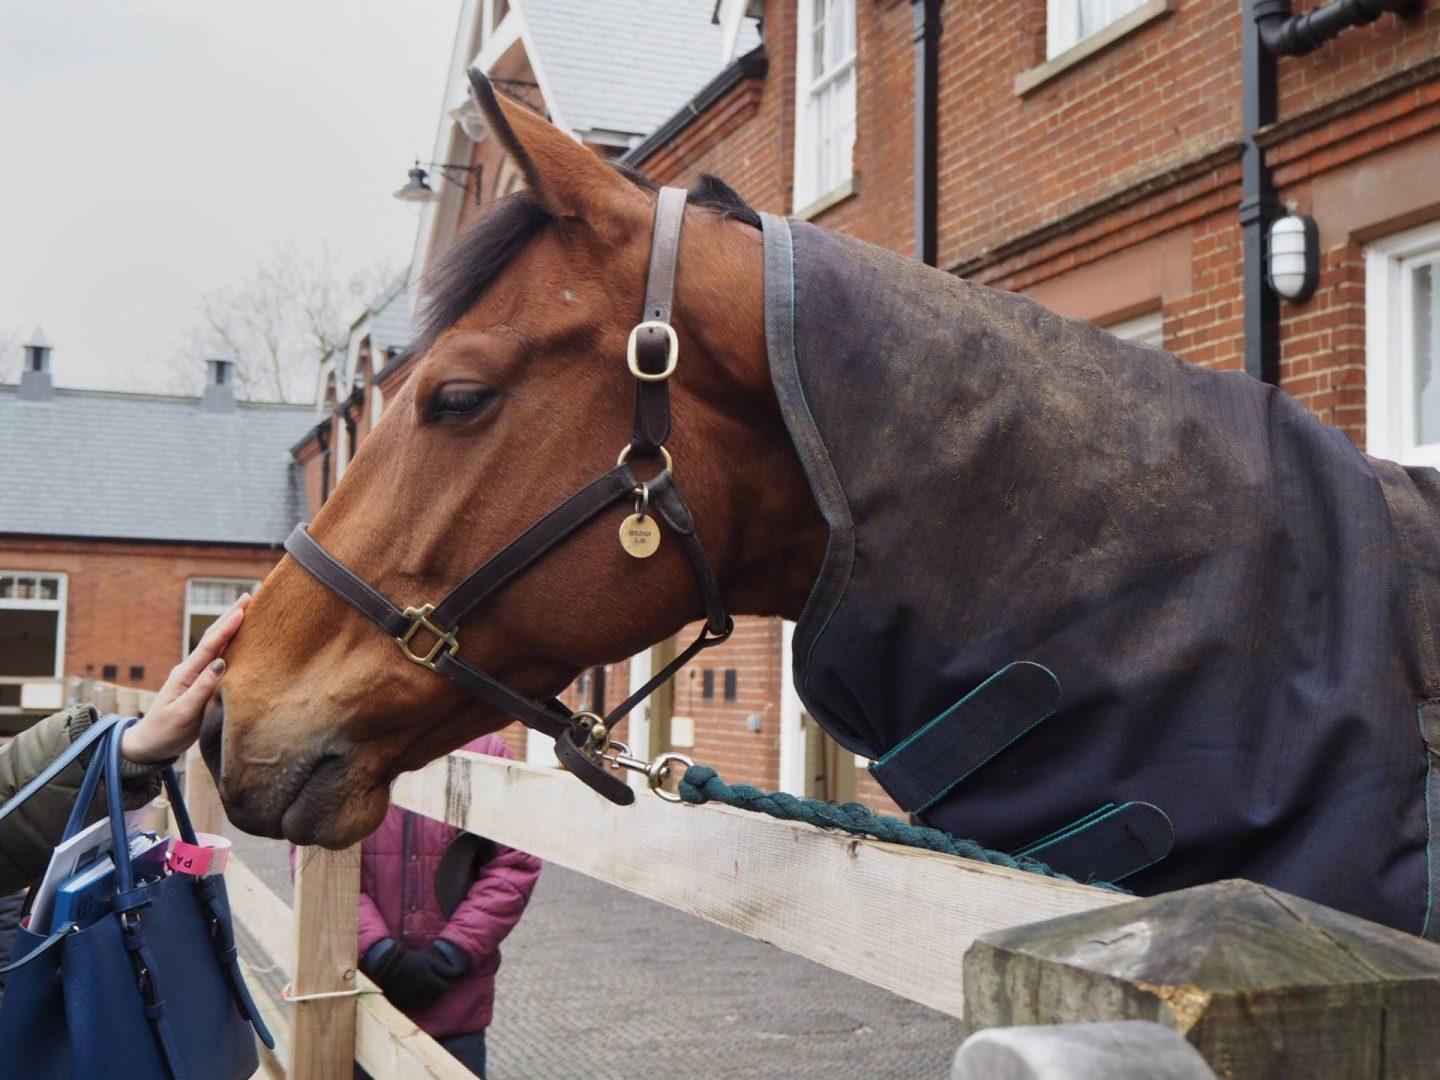 Retired racehorse at Rothschild Yard in Newmarket